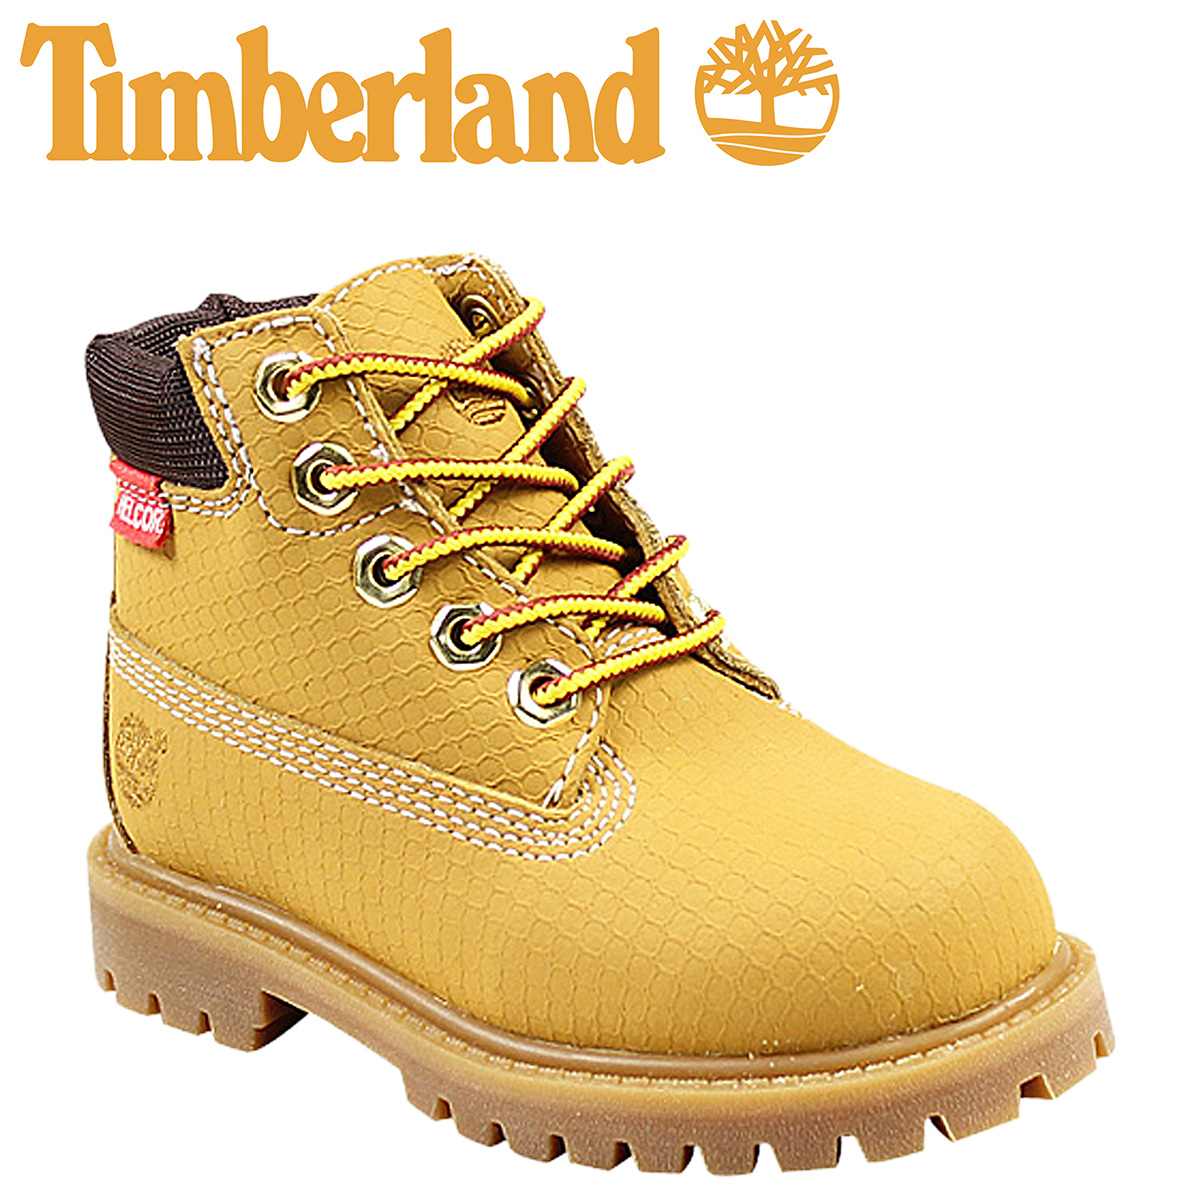 9fc7c0327665 Timberland Timberland baby kids 6 inch premium waterproof boots 6 INCH  PREMIUM WATERPROOF HELCOR BABY TODDLERS BOOTS leather junior kids 6586R  wheat  1   16 ...